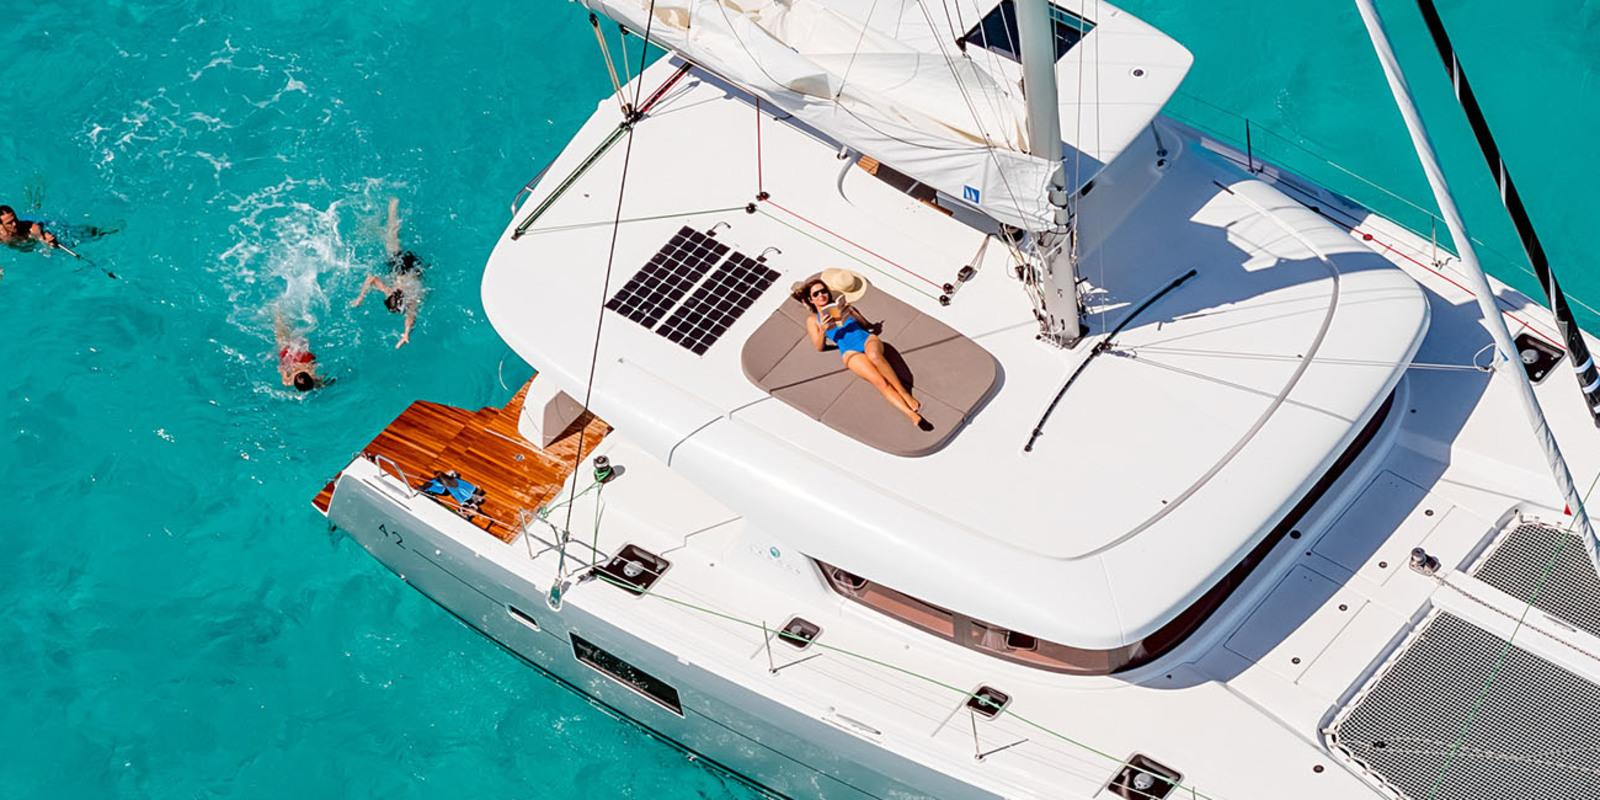 Discover the live in catamaran with your family in the most beautiful Mediterranean islands